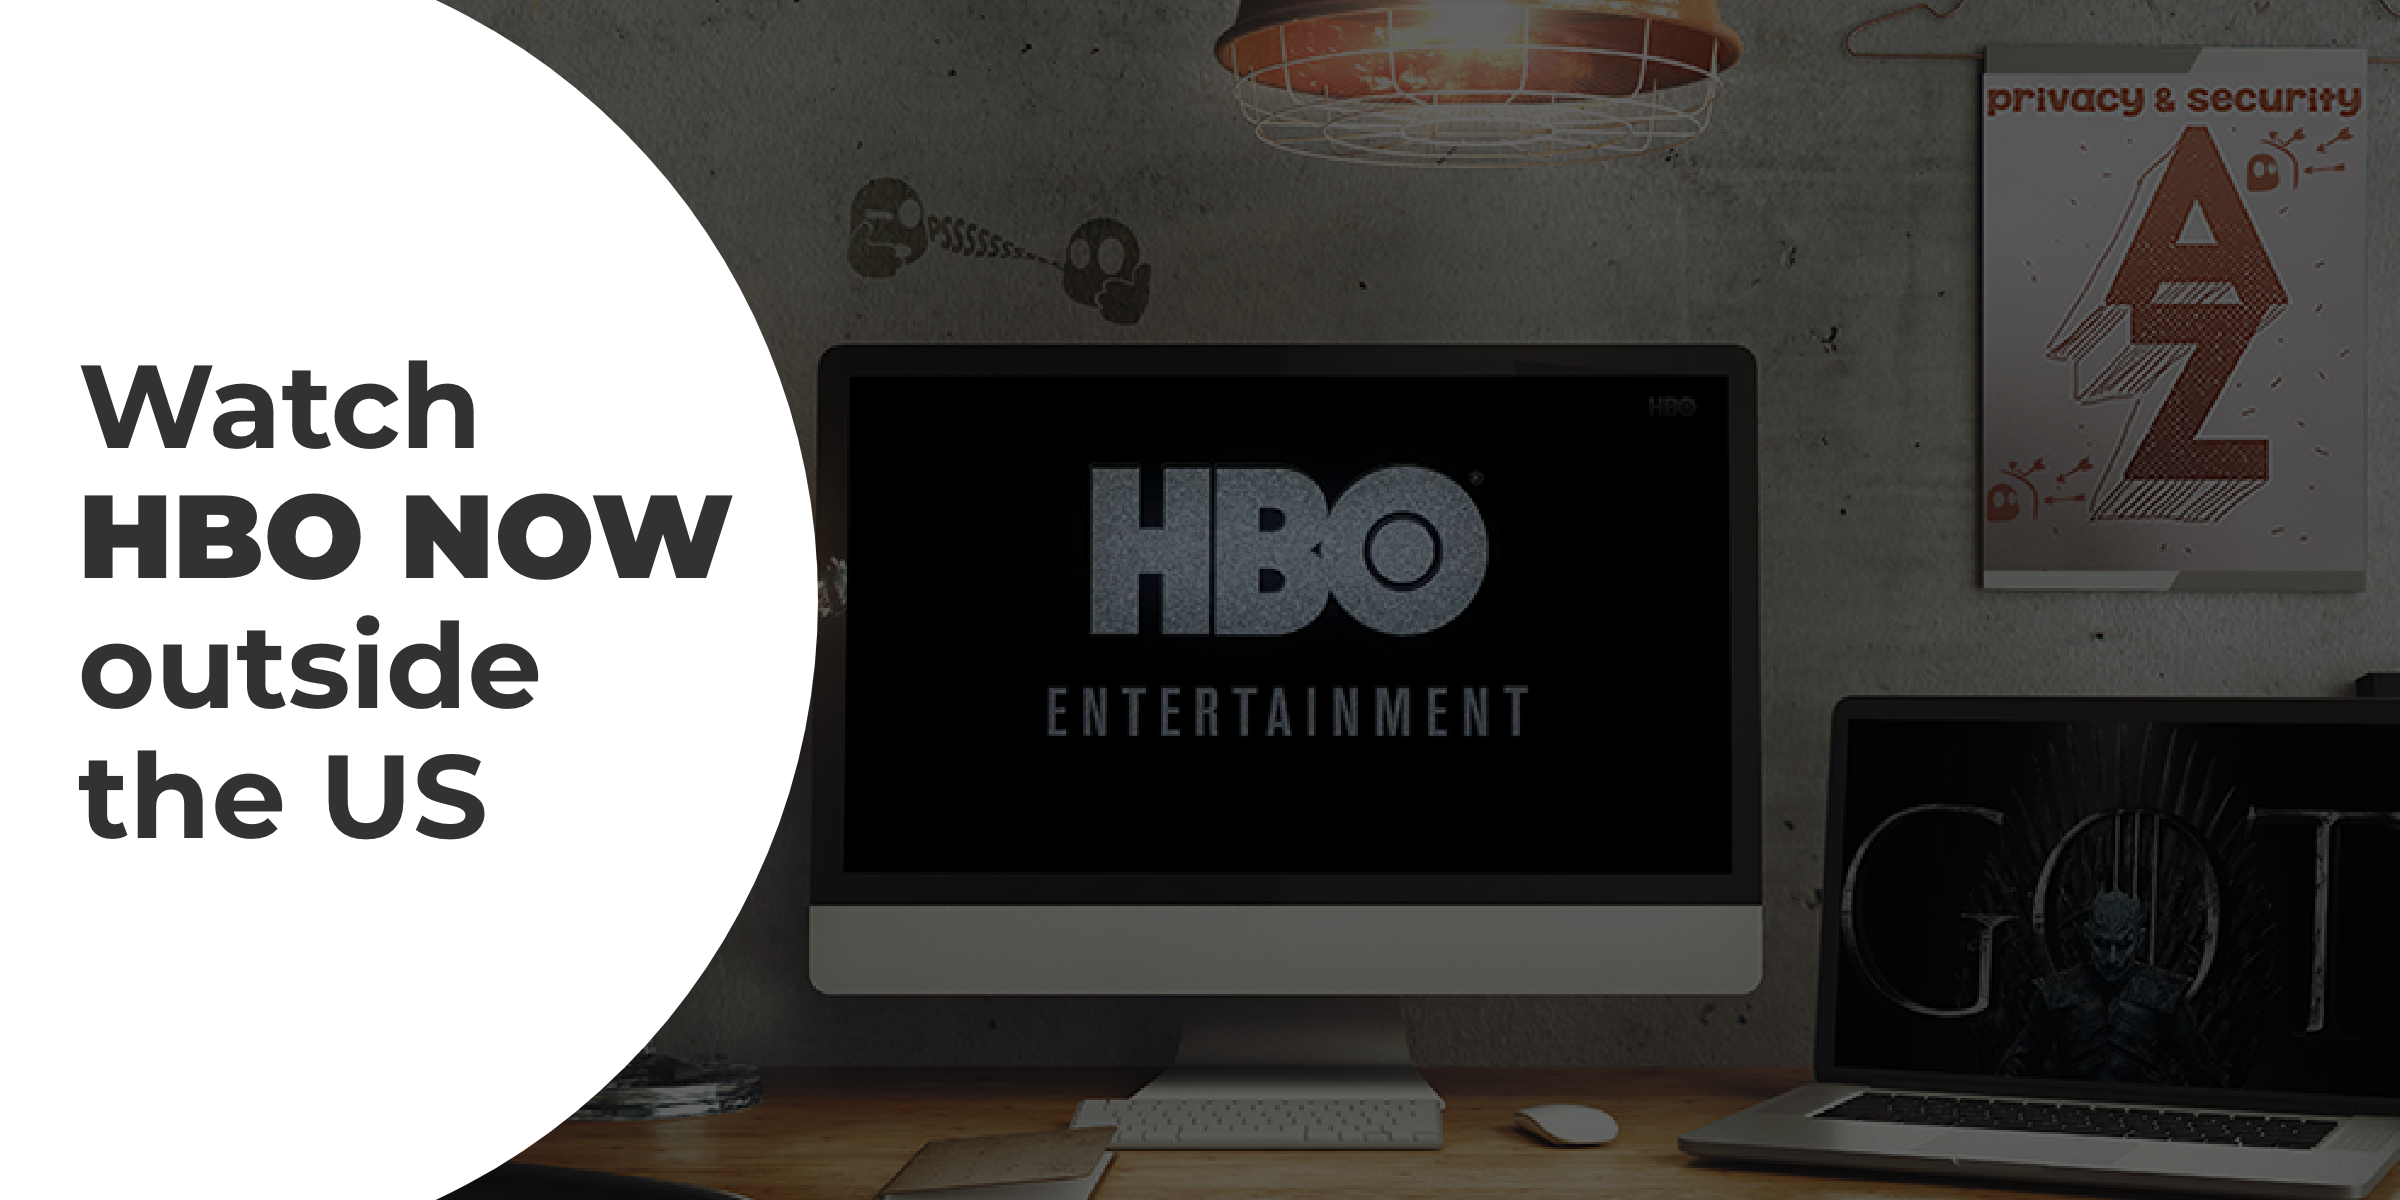 How to watch HBO NOW outside the US with a VPN | CyberGhost VPN